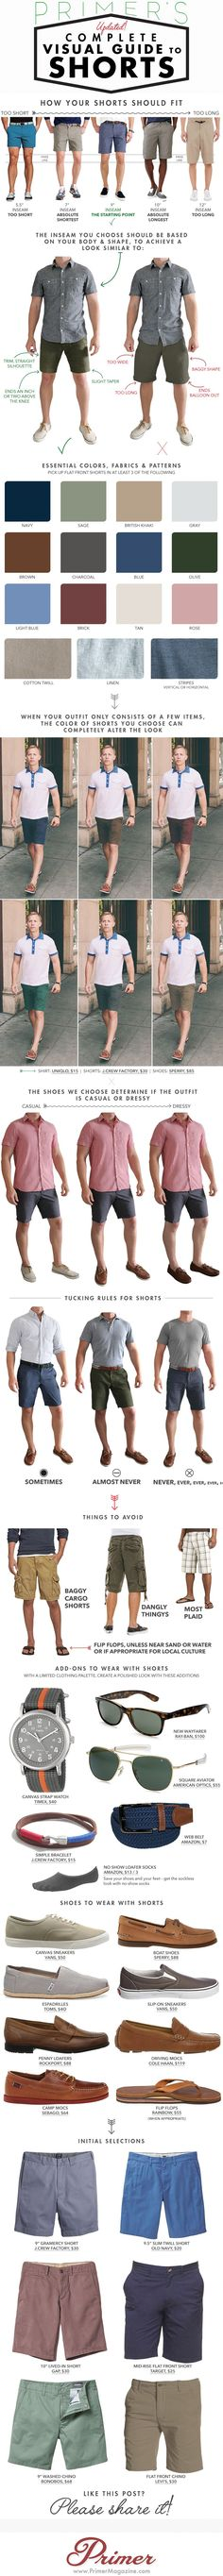 Primer's Complete Visual Guide to Shorts – Updated! - Primer #menswear #style